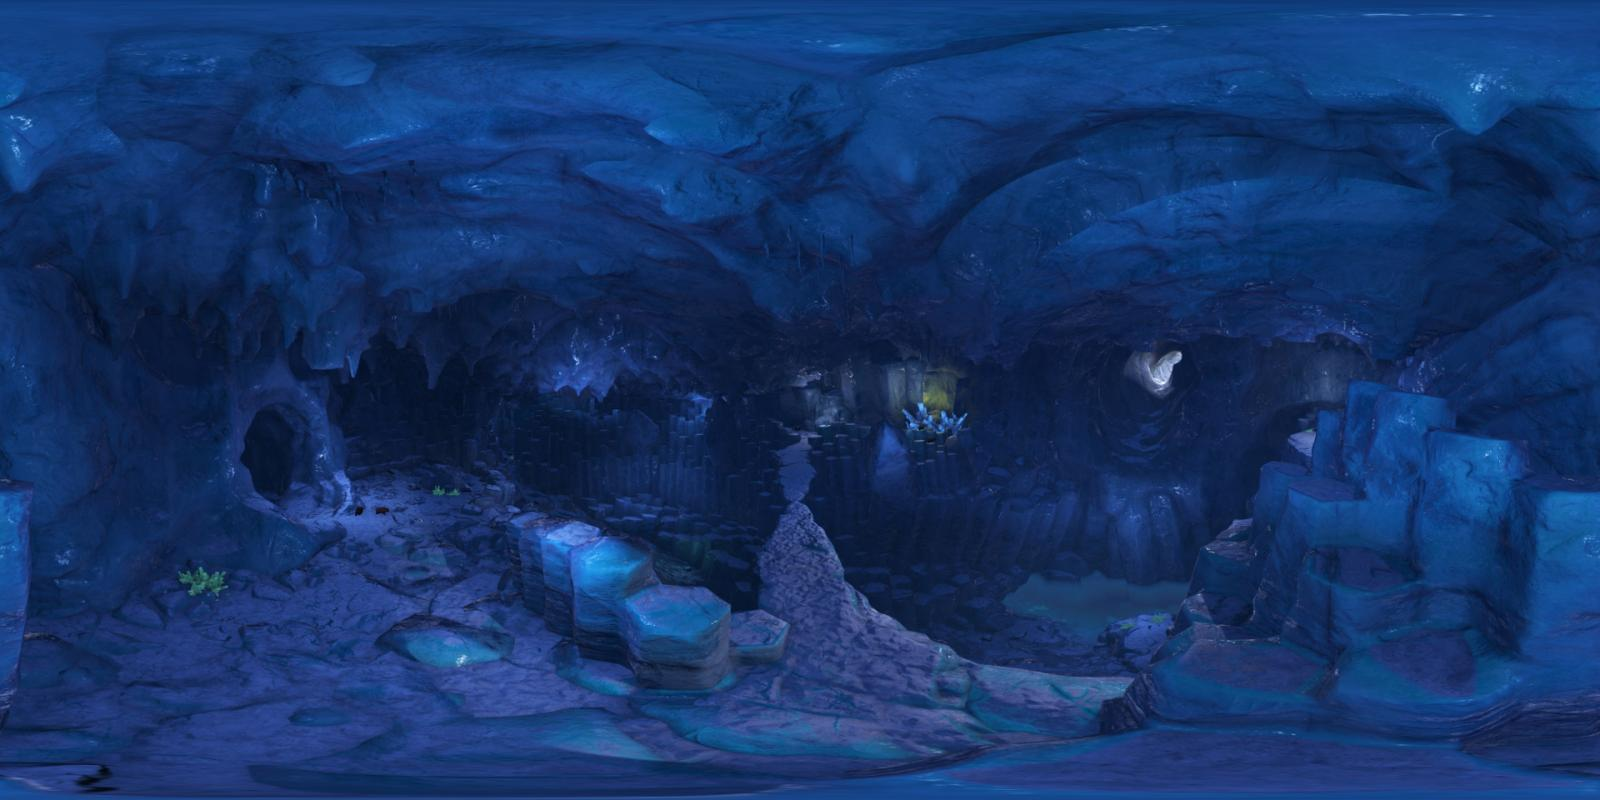 large.59851396d8b35_EXFIB0-IceCave-360Stereo.jpg